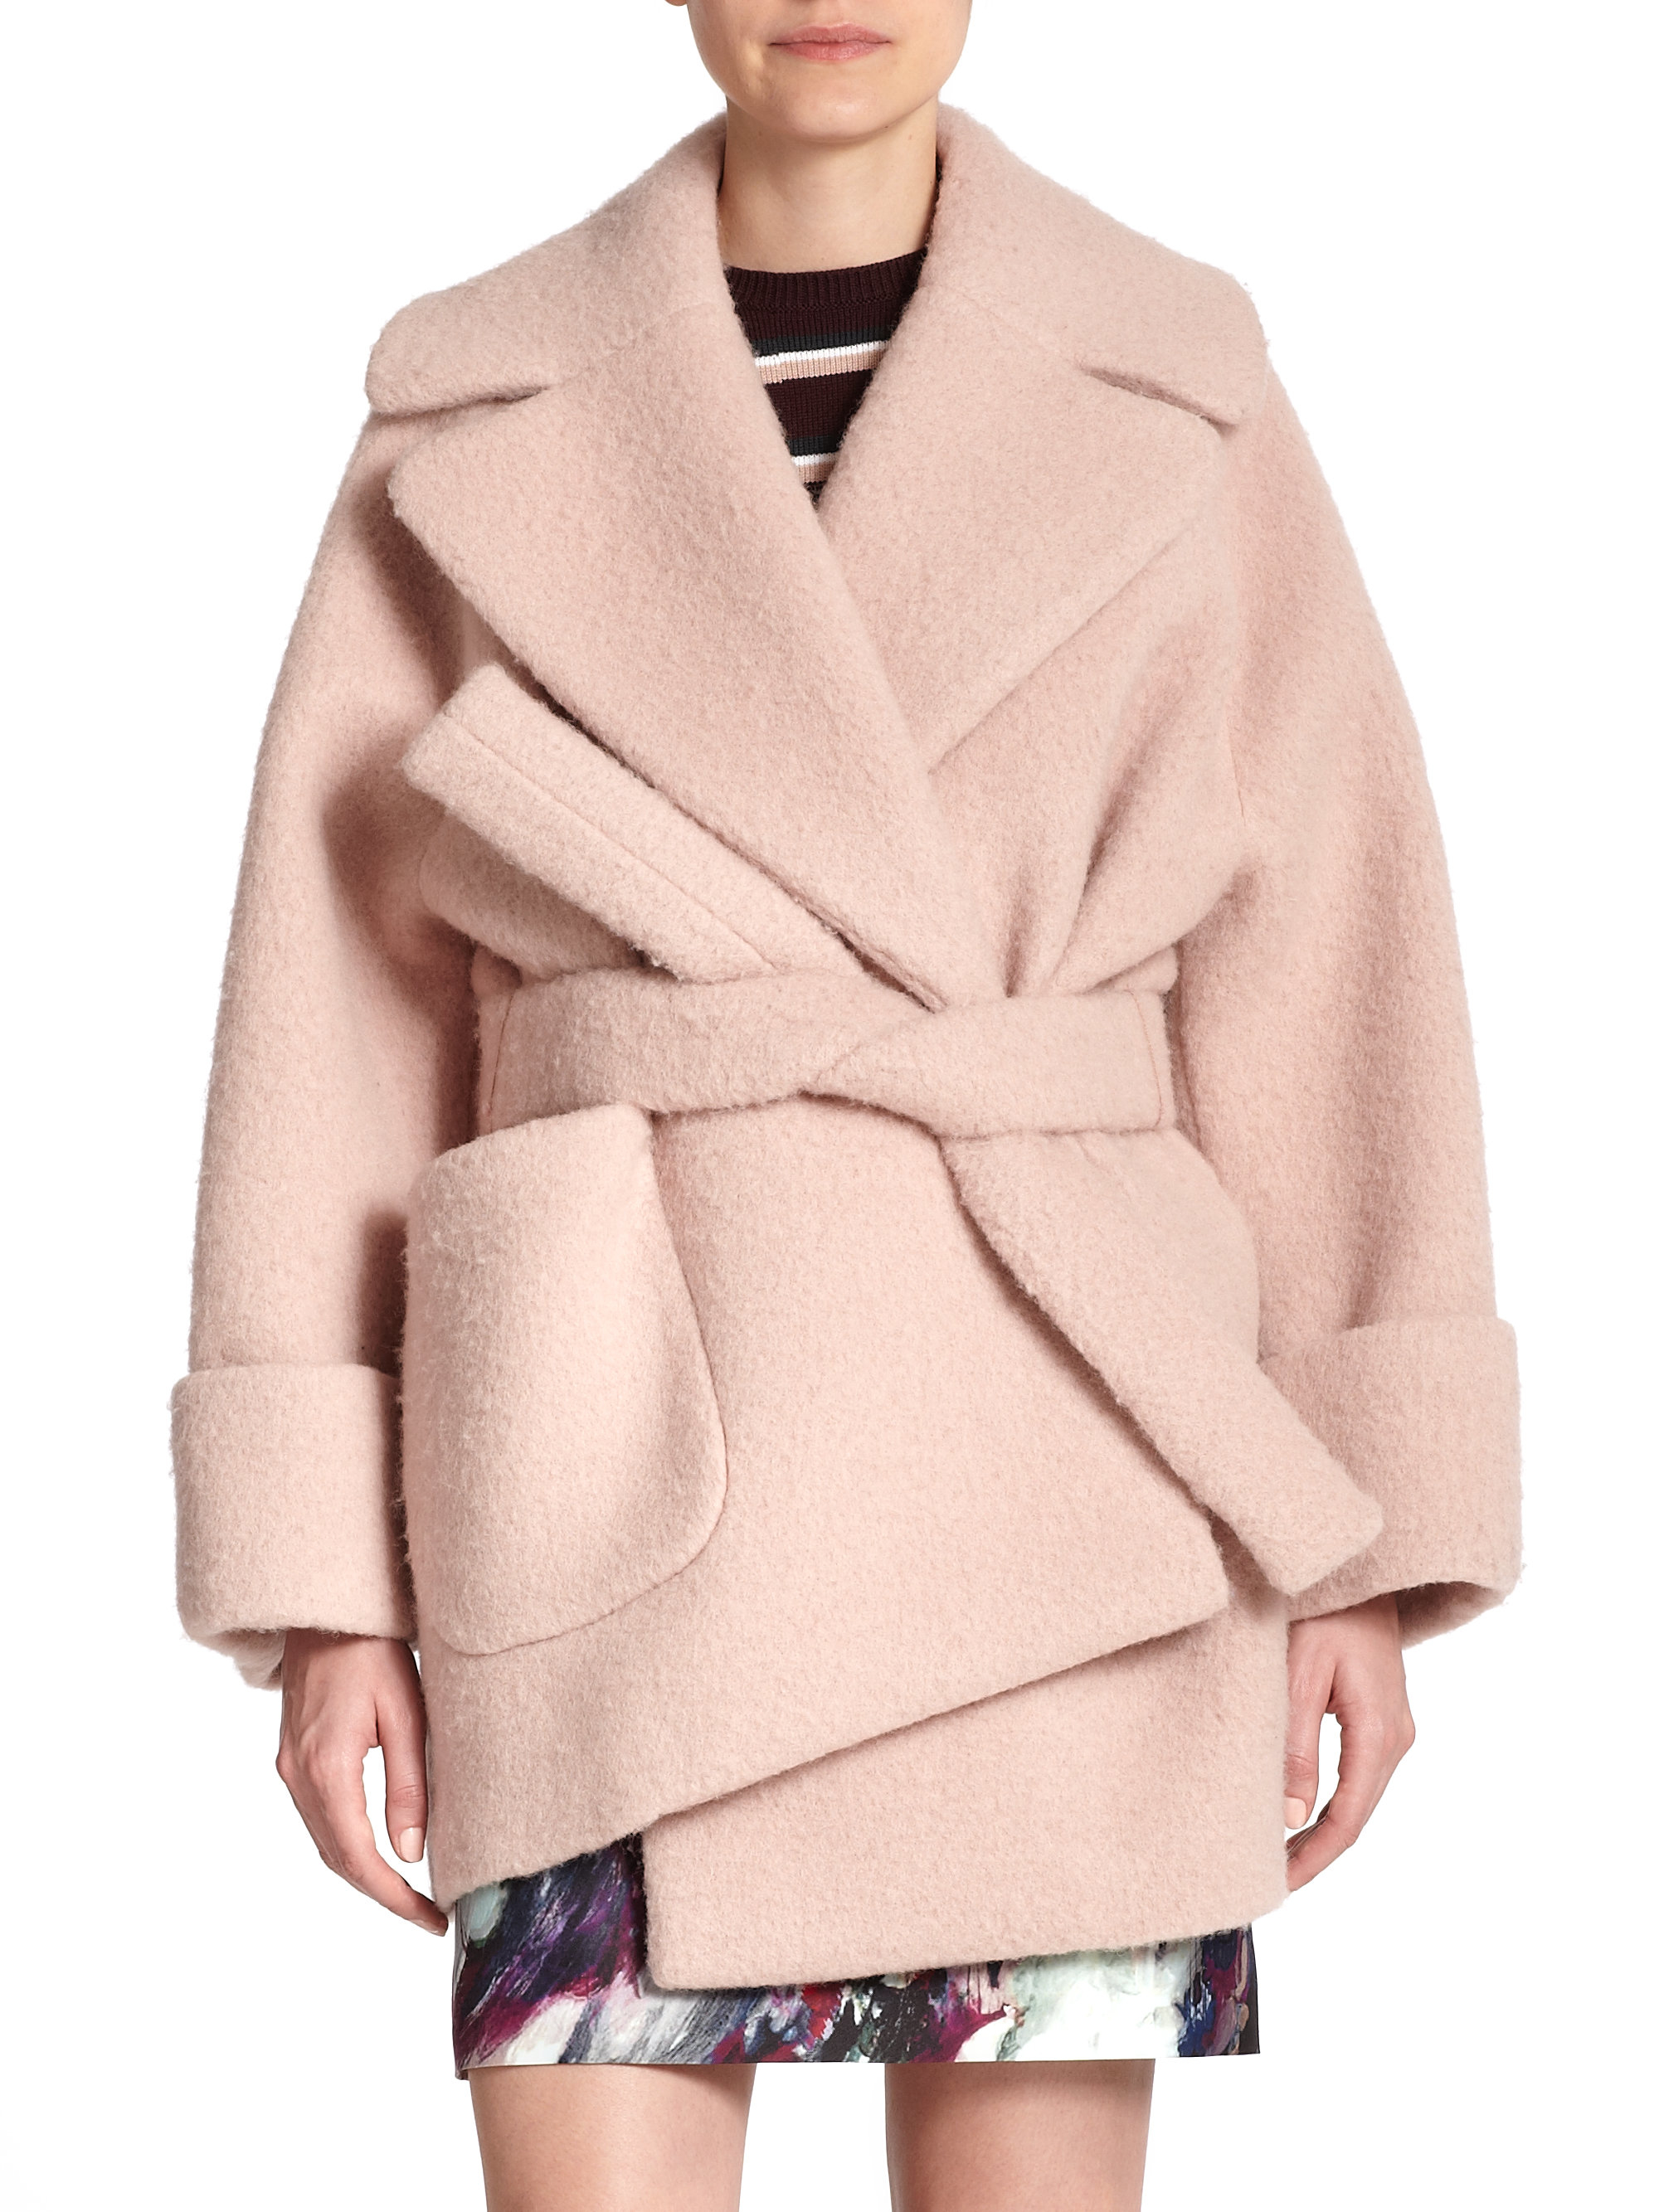 Carven Oversized Manteau Coat in Natural | Lyst